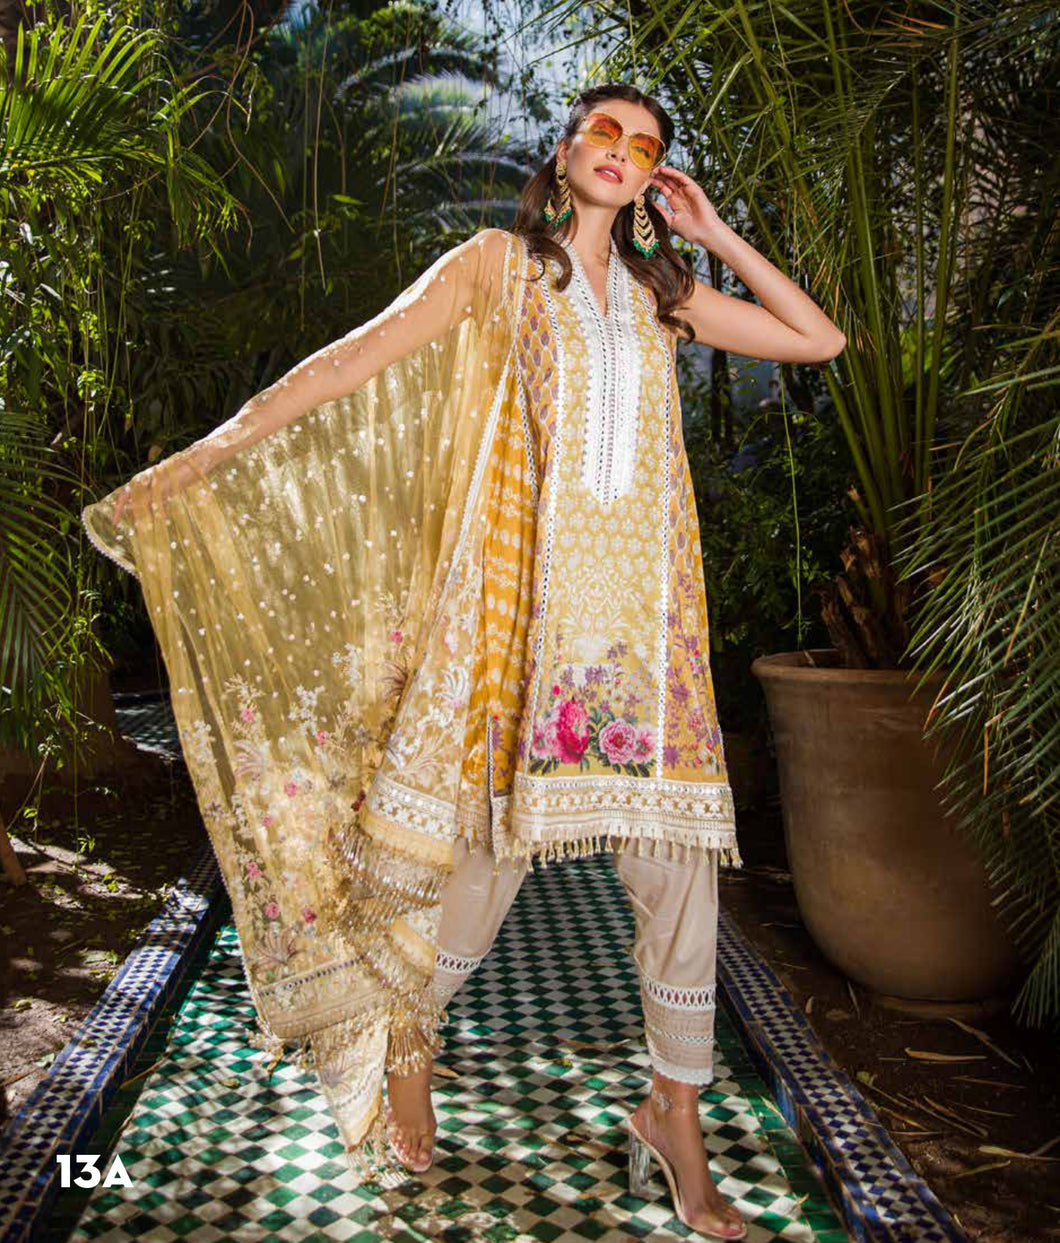 Sobia Nazir's Luxury Lawn Collection 2020 - 13A online Pakistani designer dress Anarkali Suits Party Werar Indian Dresses Pakistani Dresses